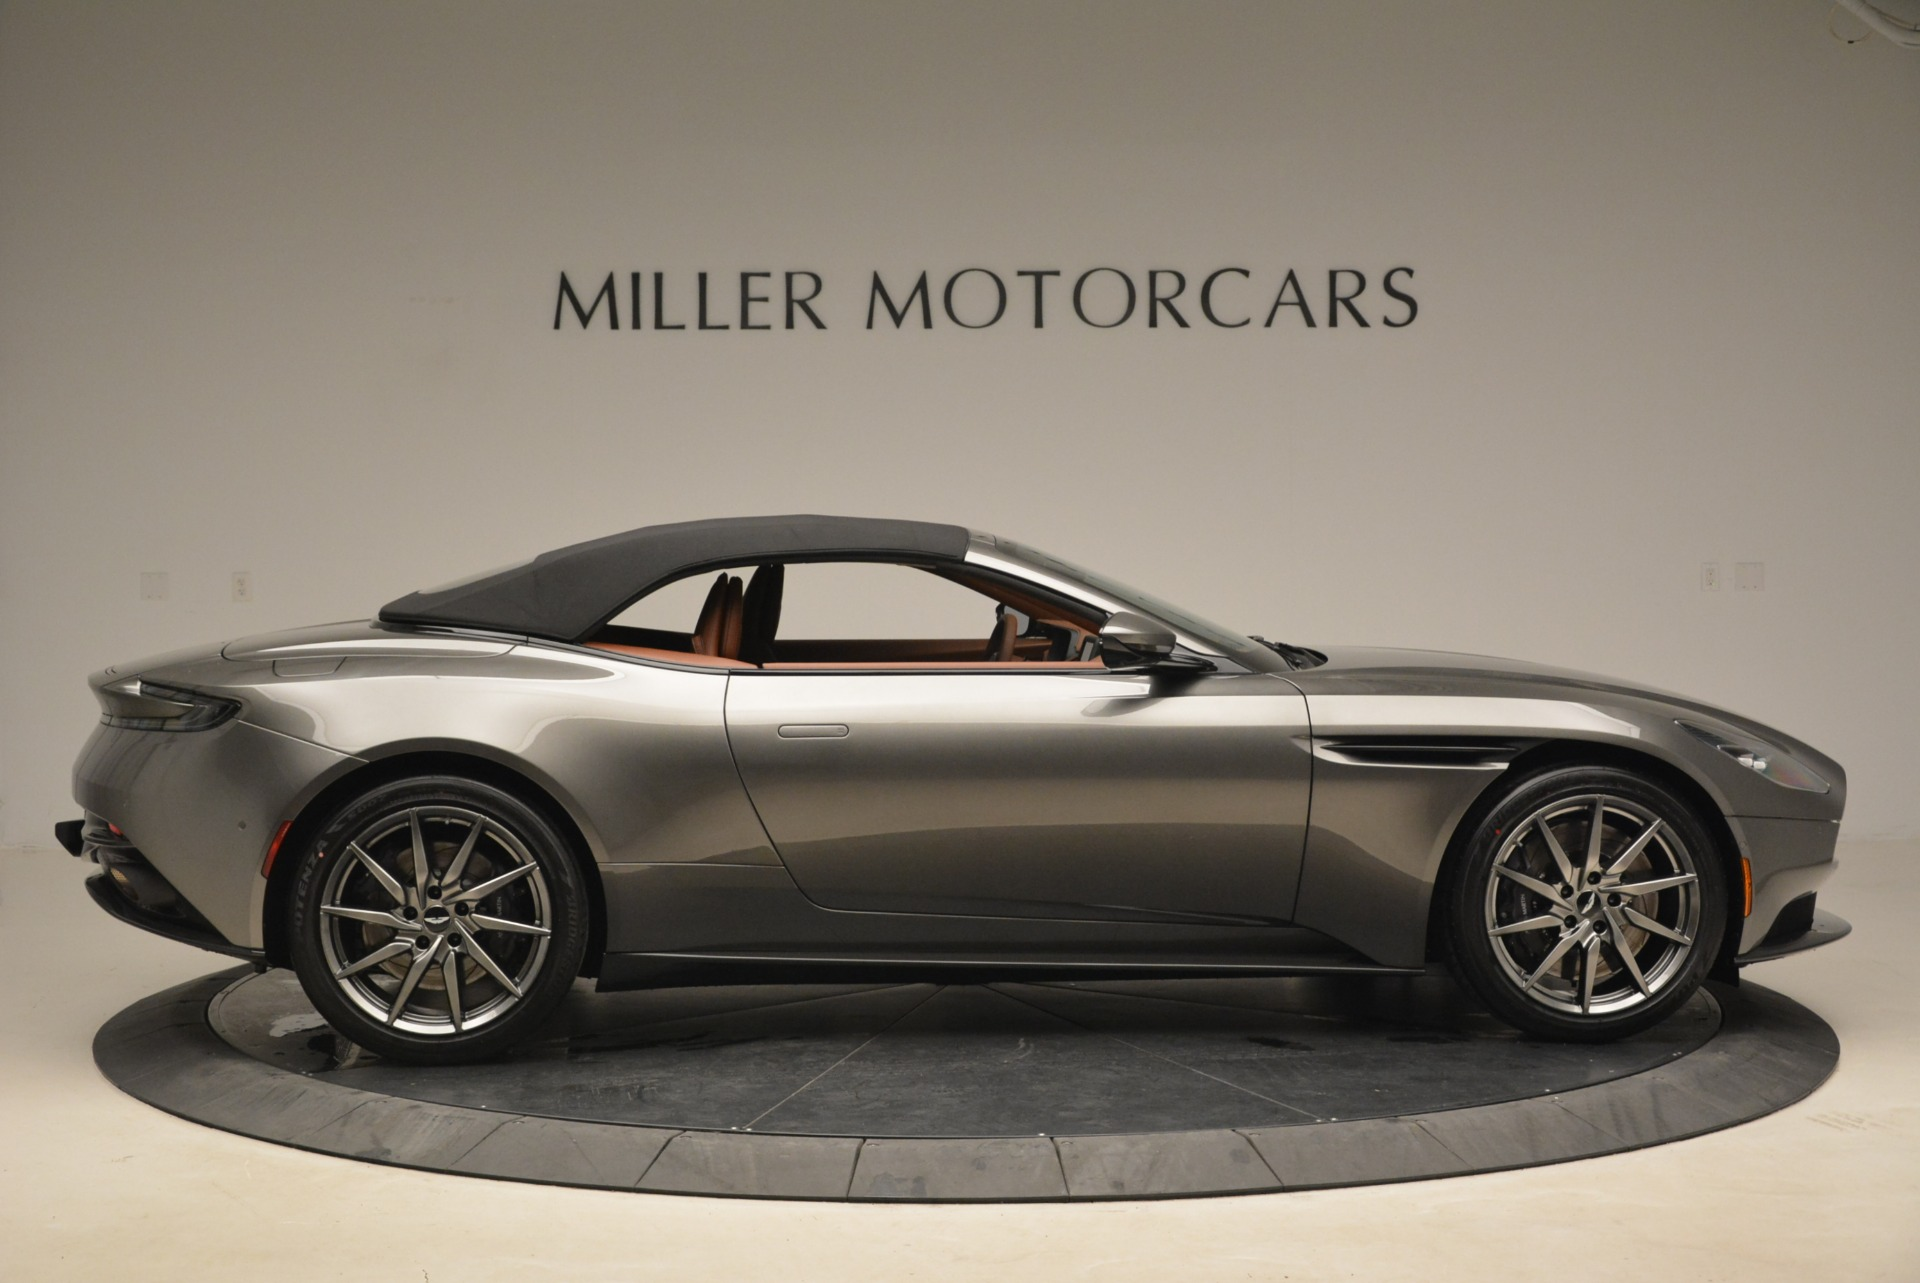 New 2019 Aston Martin DB11 Volante  For Sale In Greenwich, CT. Alfa Romeo of Greenwich, A1284 2209_p21